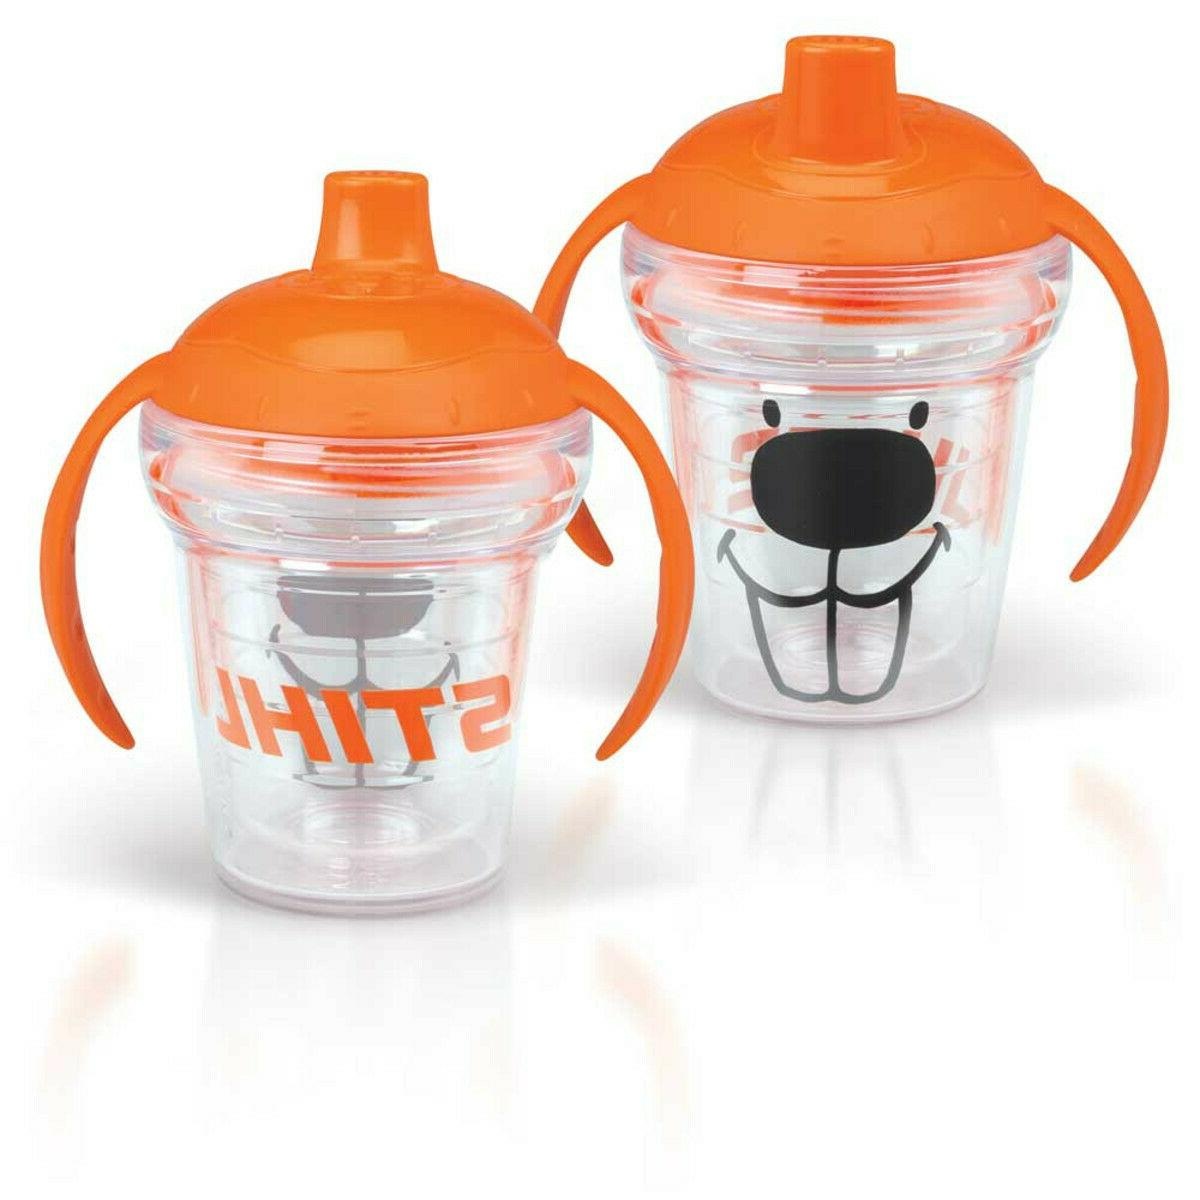 officially licensed stihl sippy cup